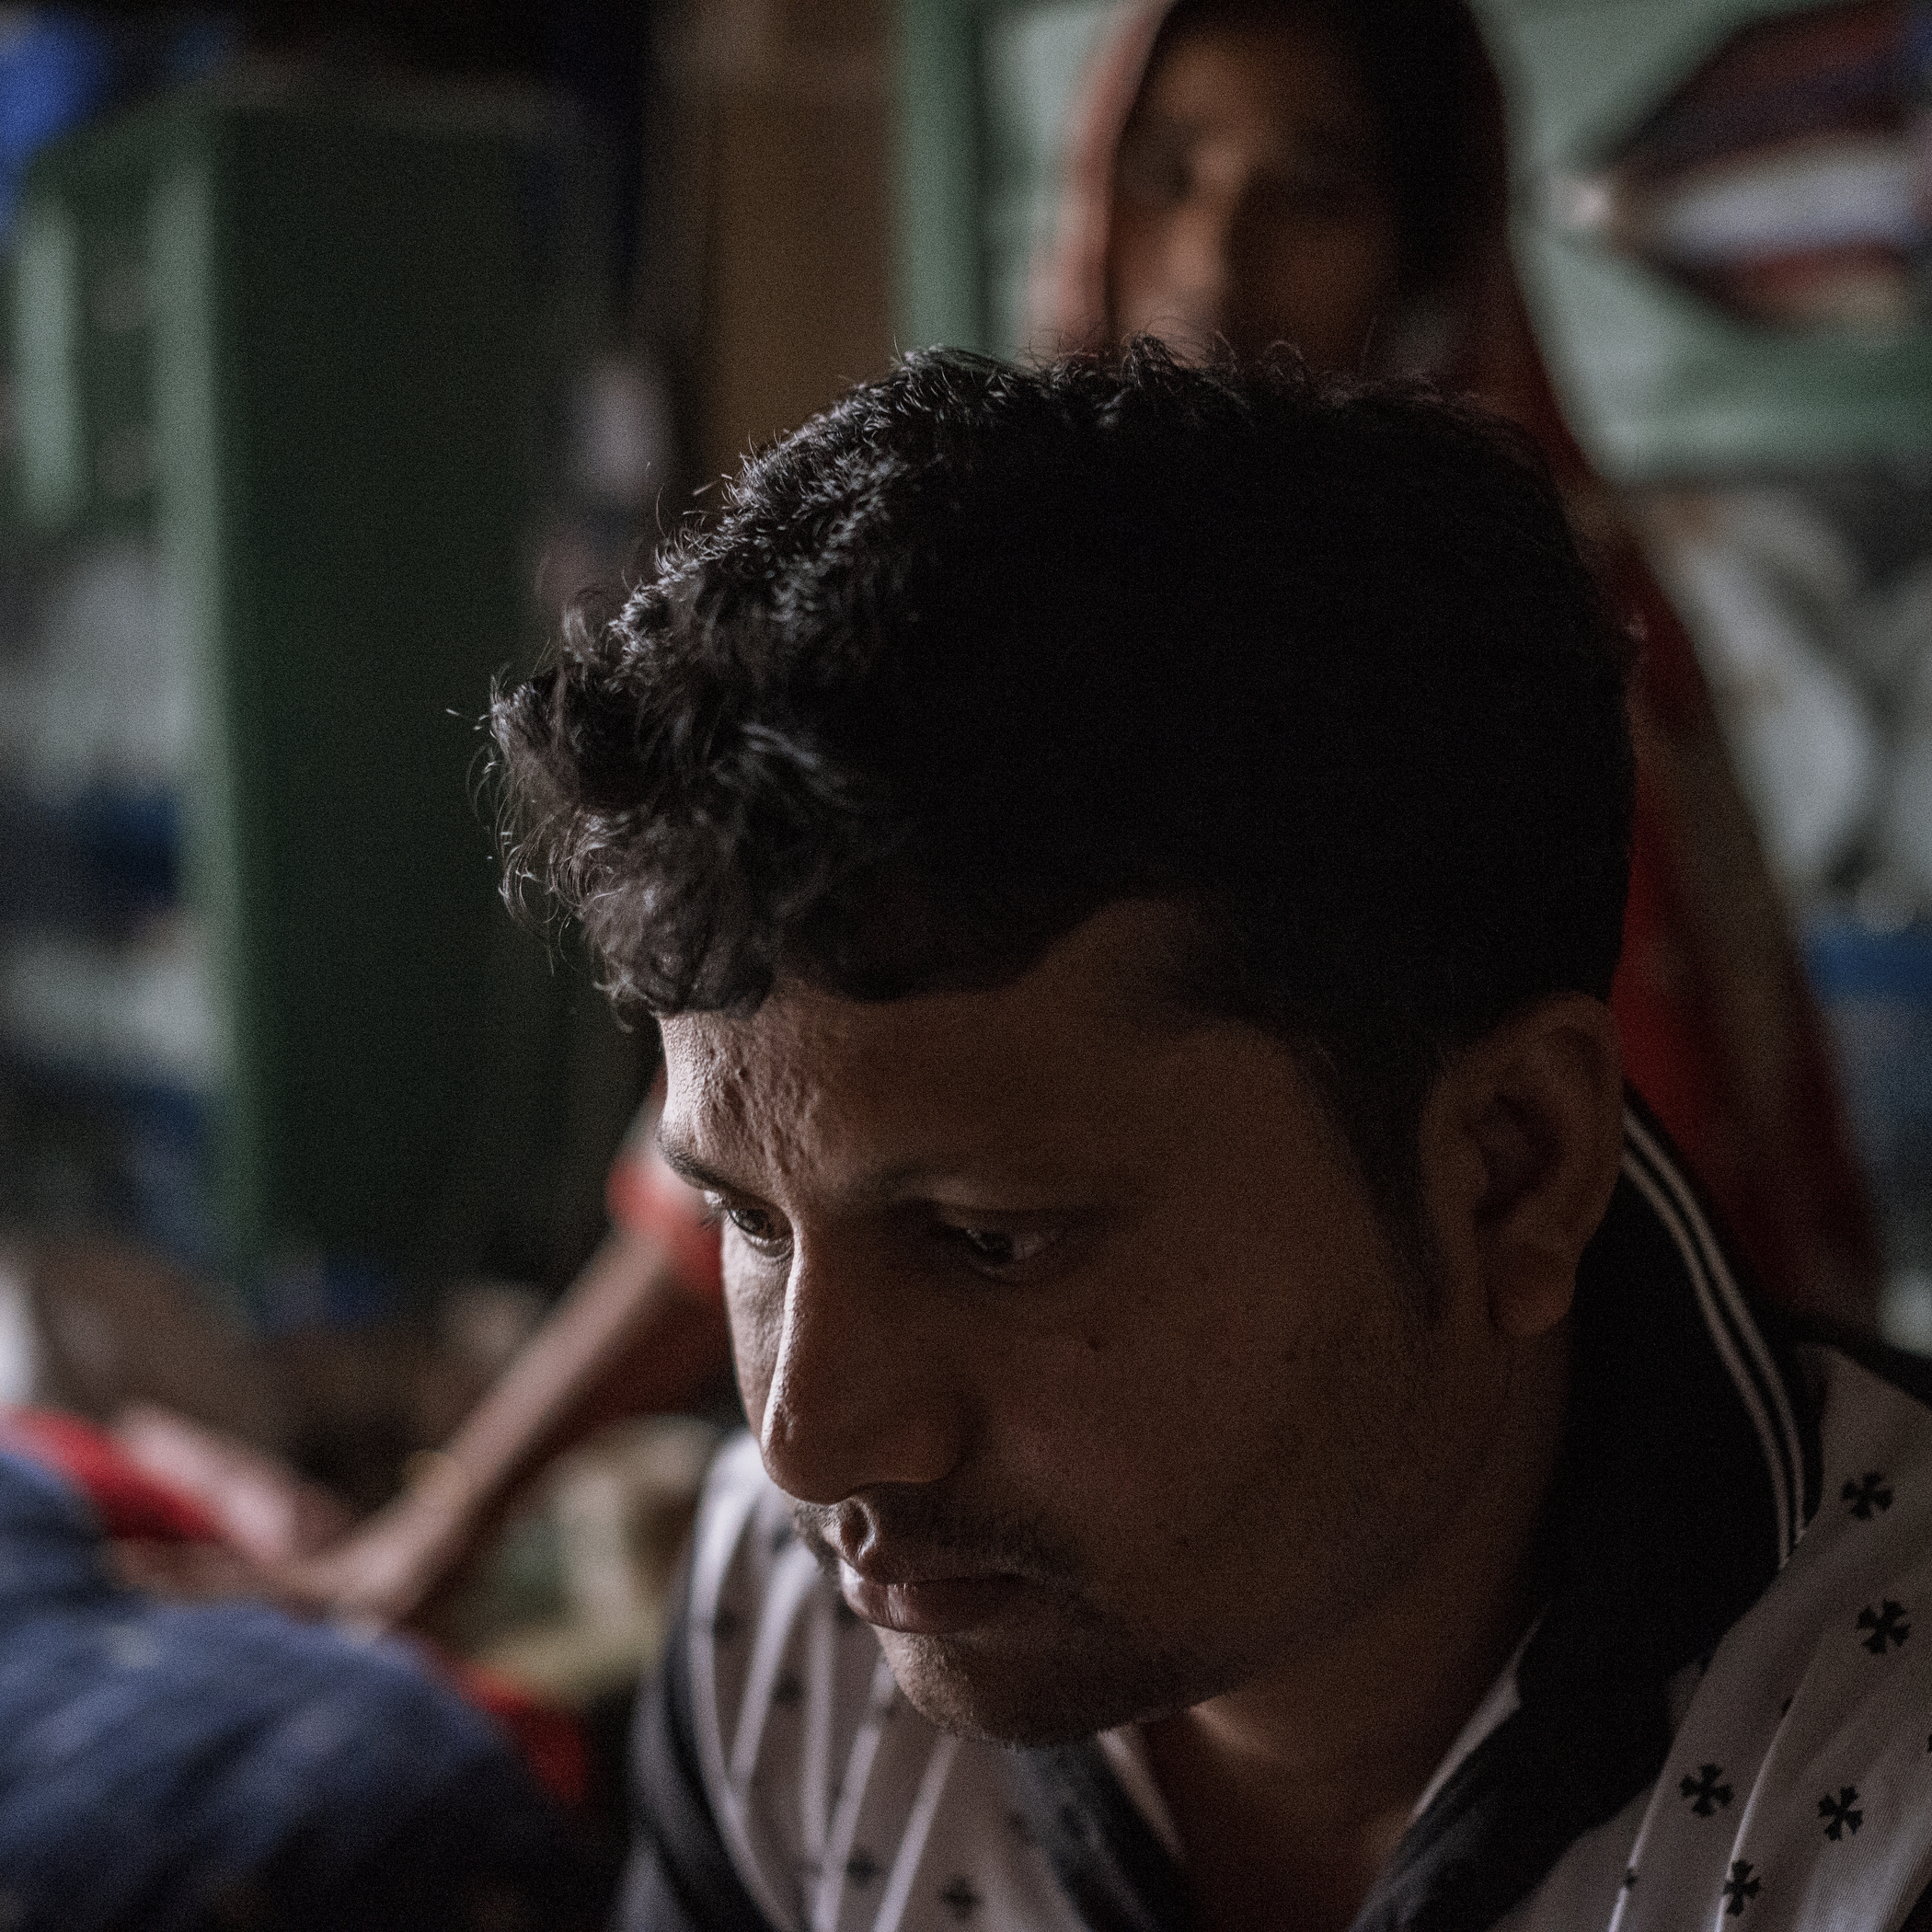 Shamim, who formerly worked as a supervisor in a garments factory, now works as an operator because he was rendered unfit for the post when Rana Plaza collapsed and injured him severely.